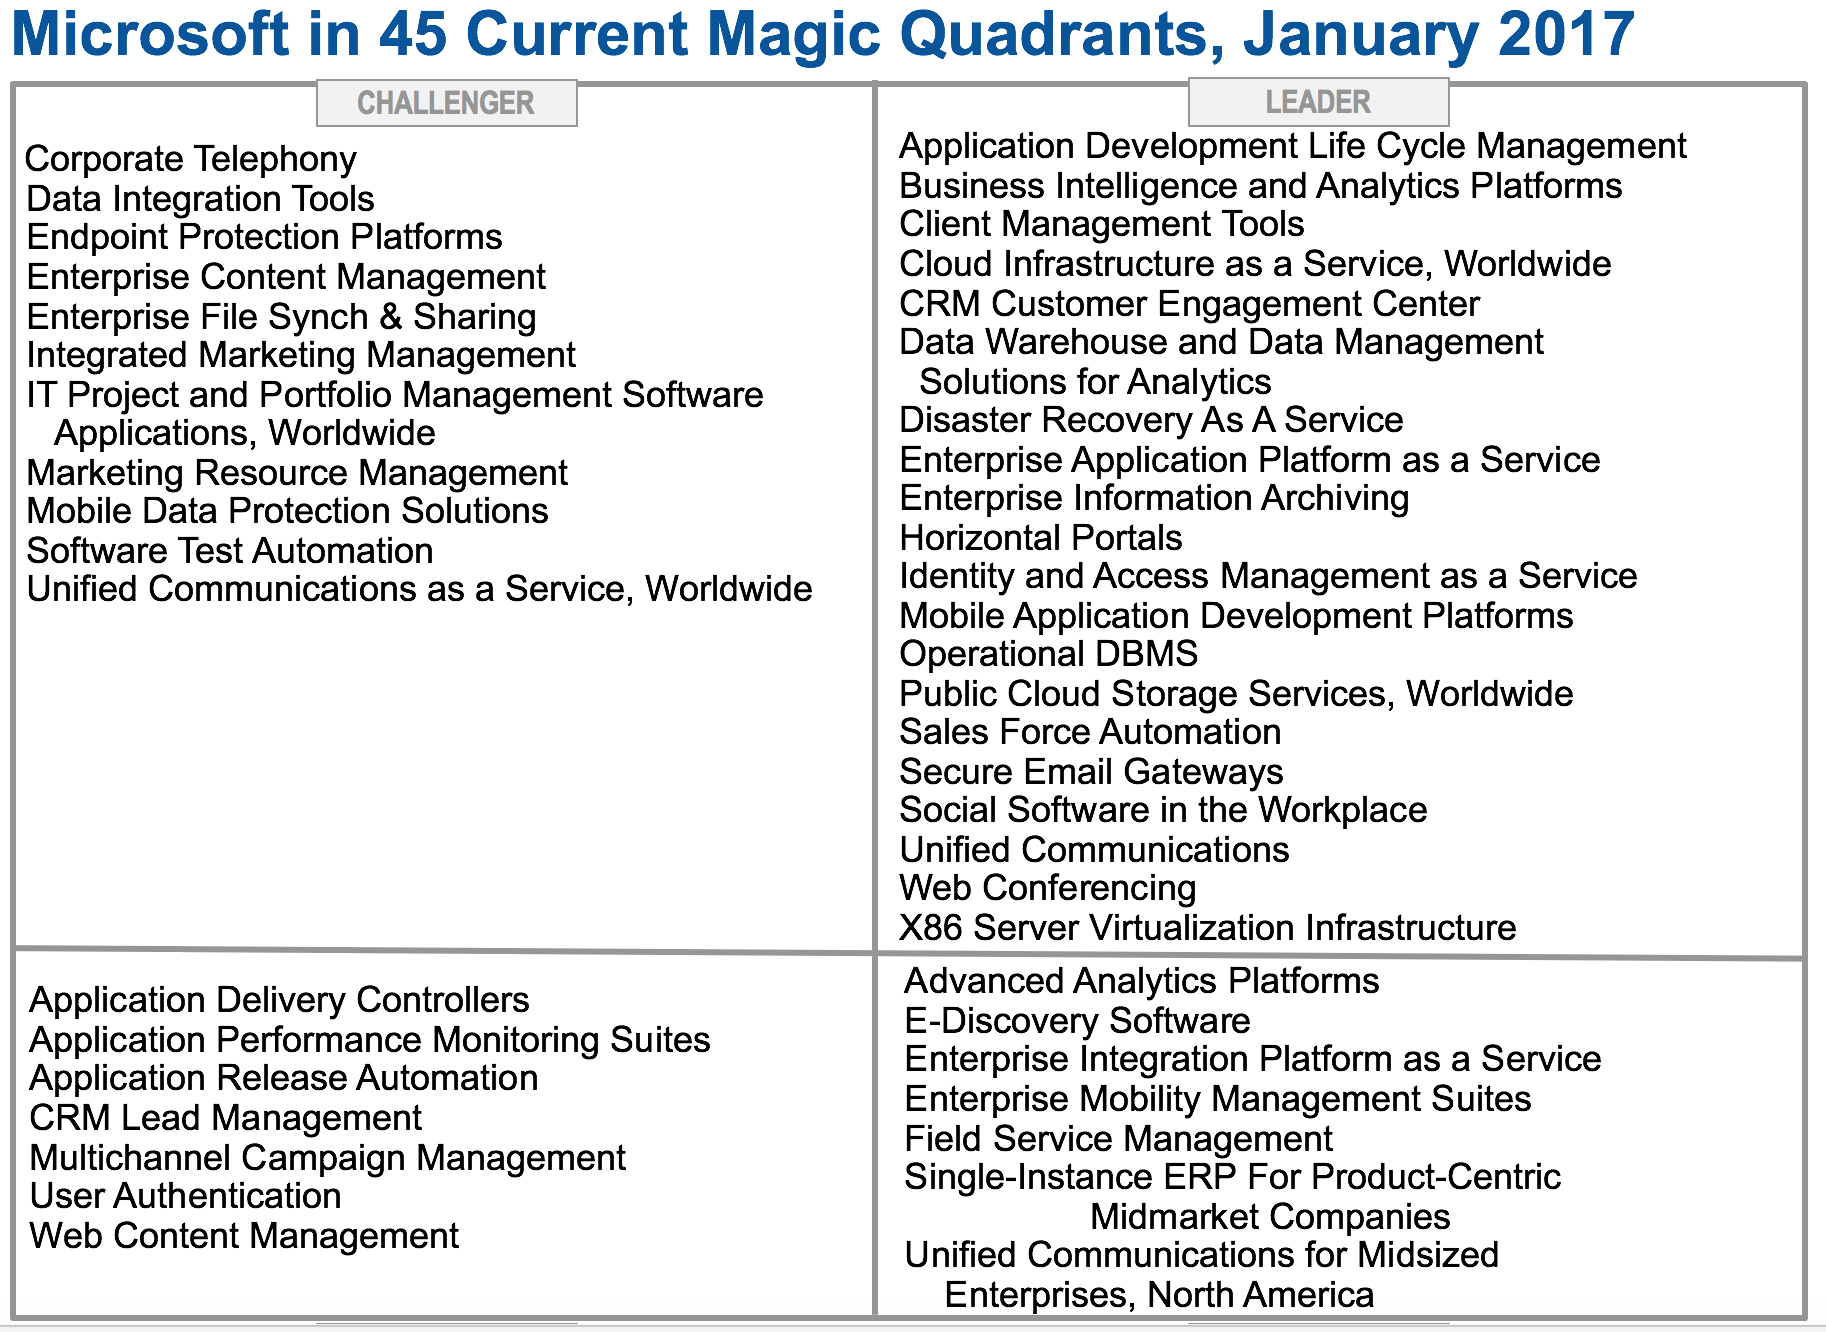 Microsoft Enters 2017 With 45 Offerings In Magic Quadrants